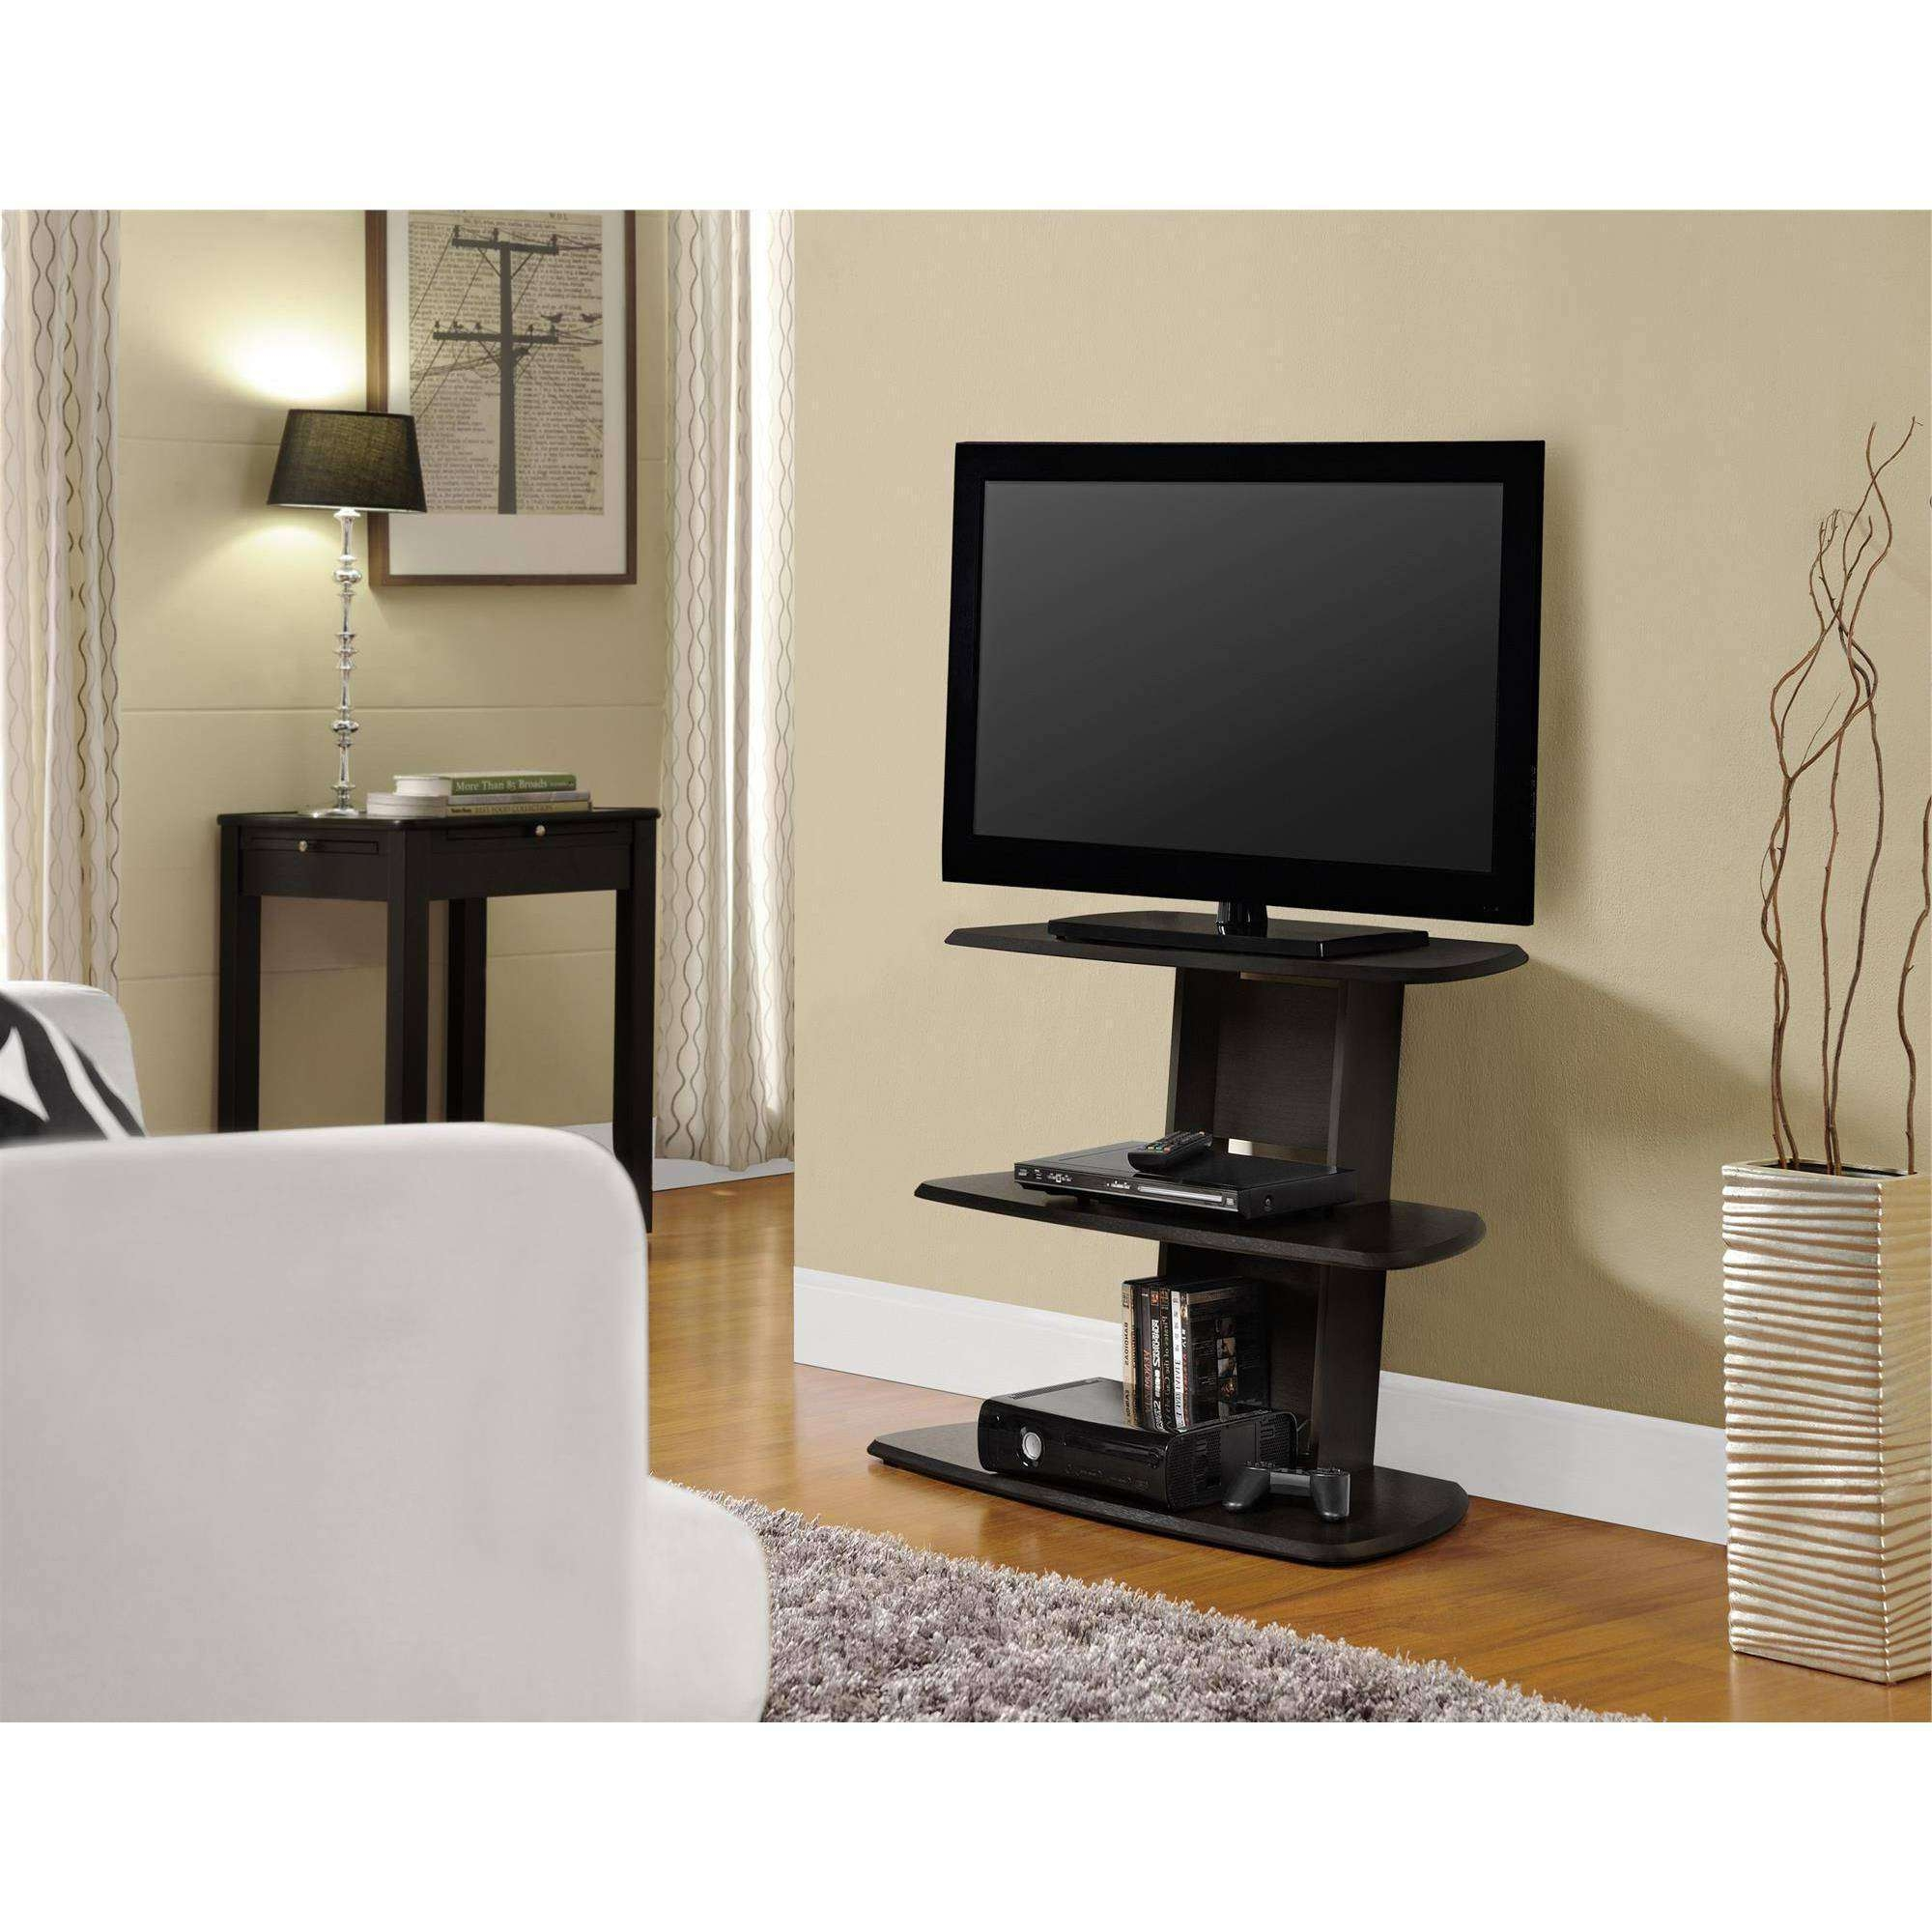 Get Tv Stand 32 Inch For Your Tv – Furniture Depot With 32 Inch Corner Tv Stands (View 3 of 15)